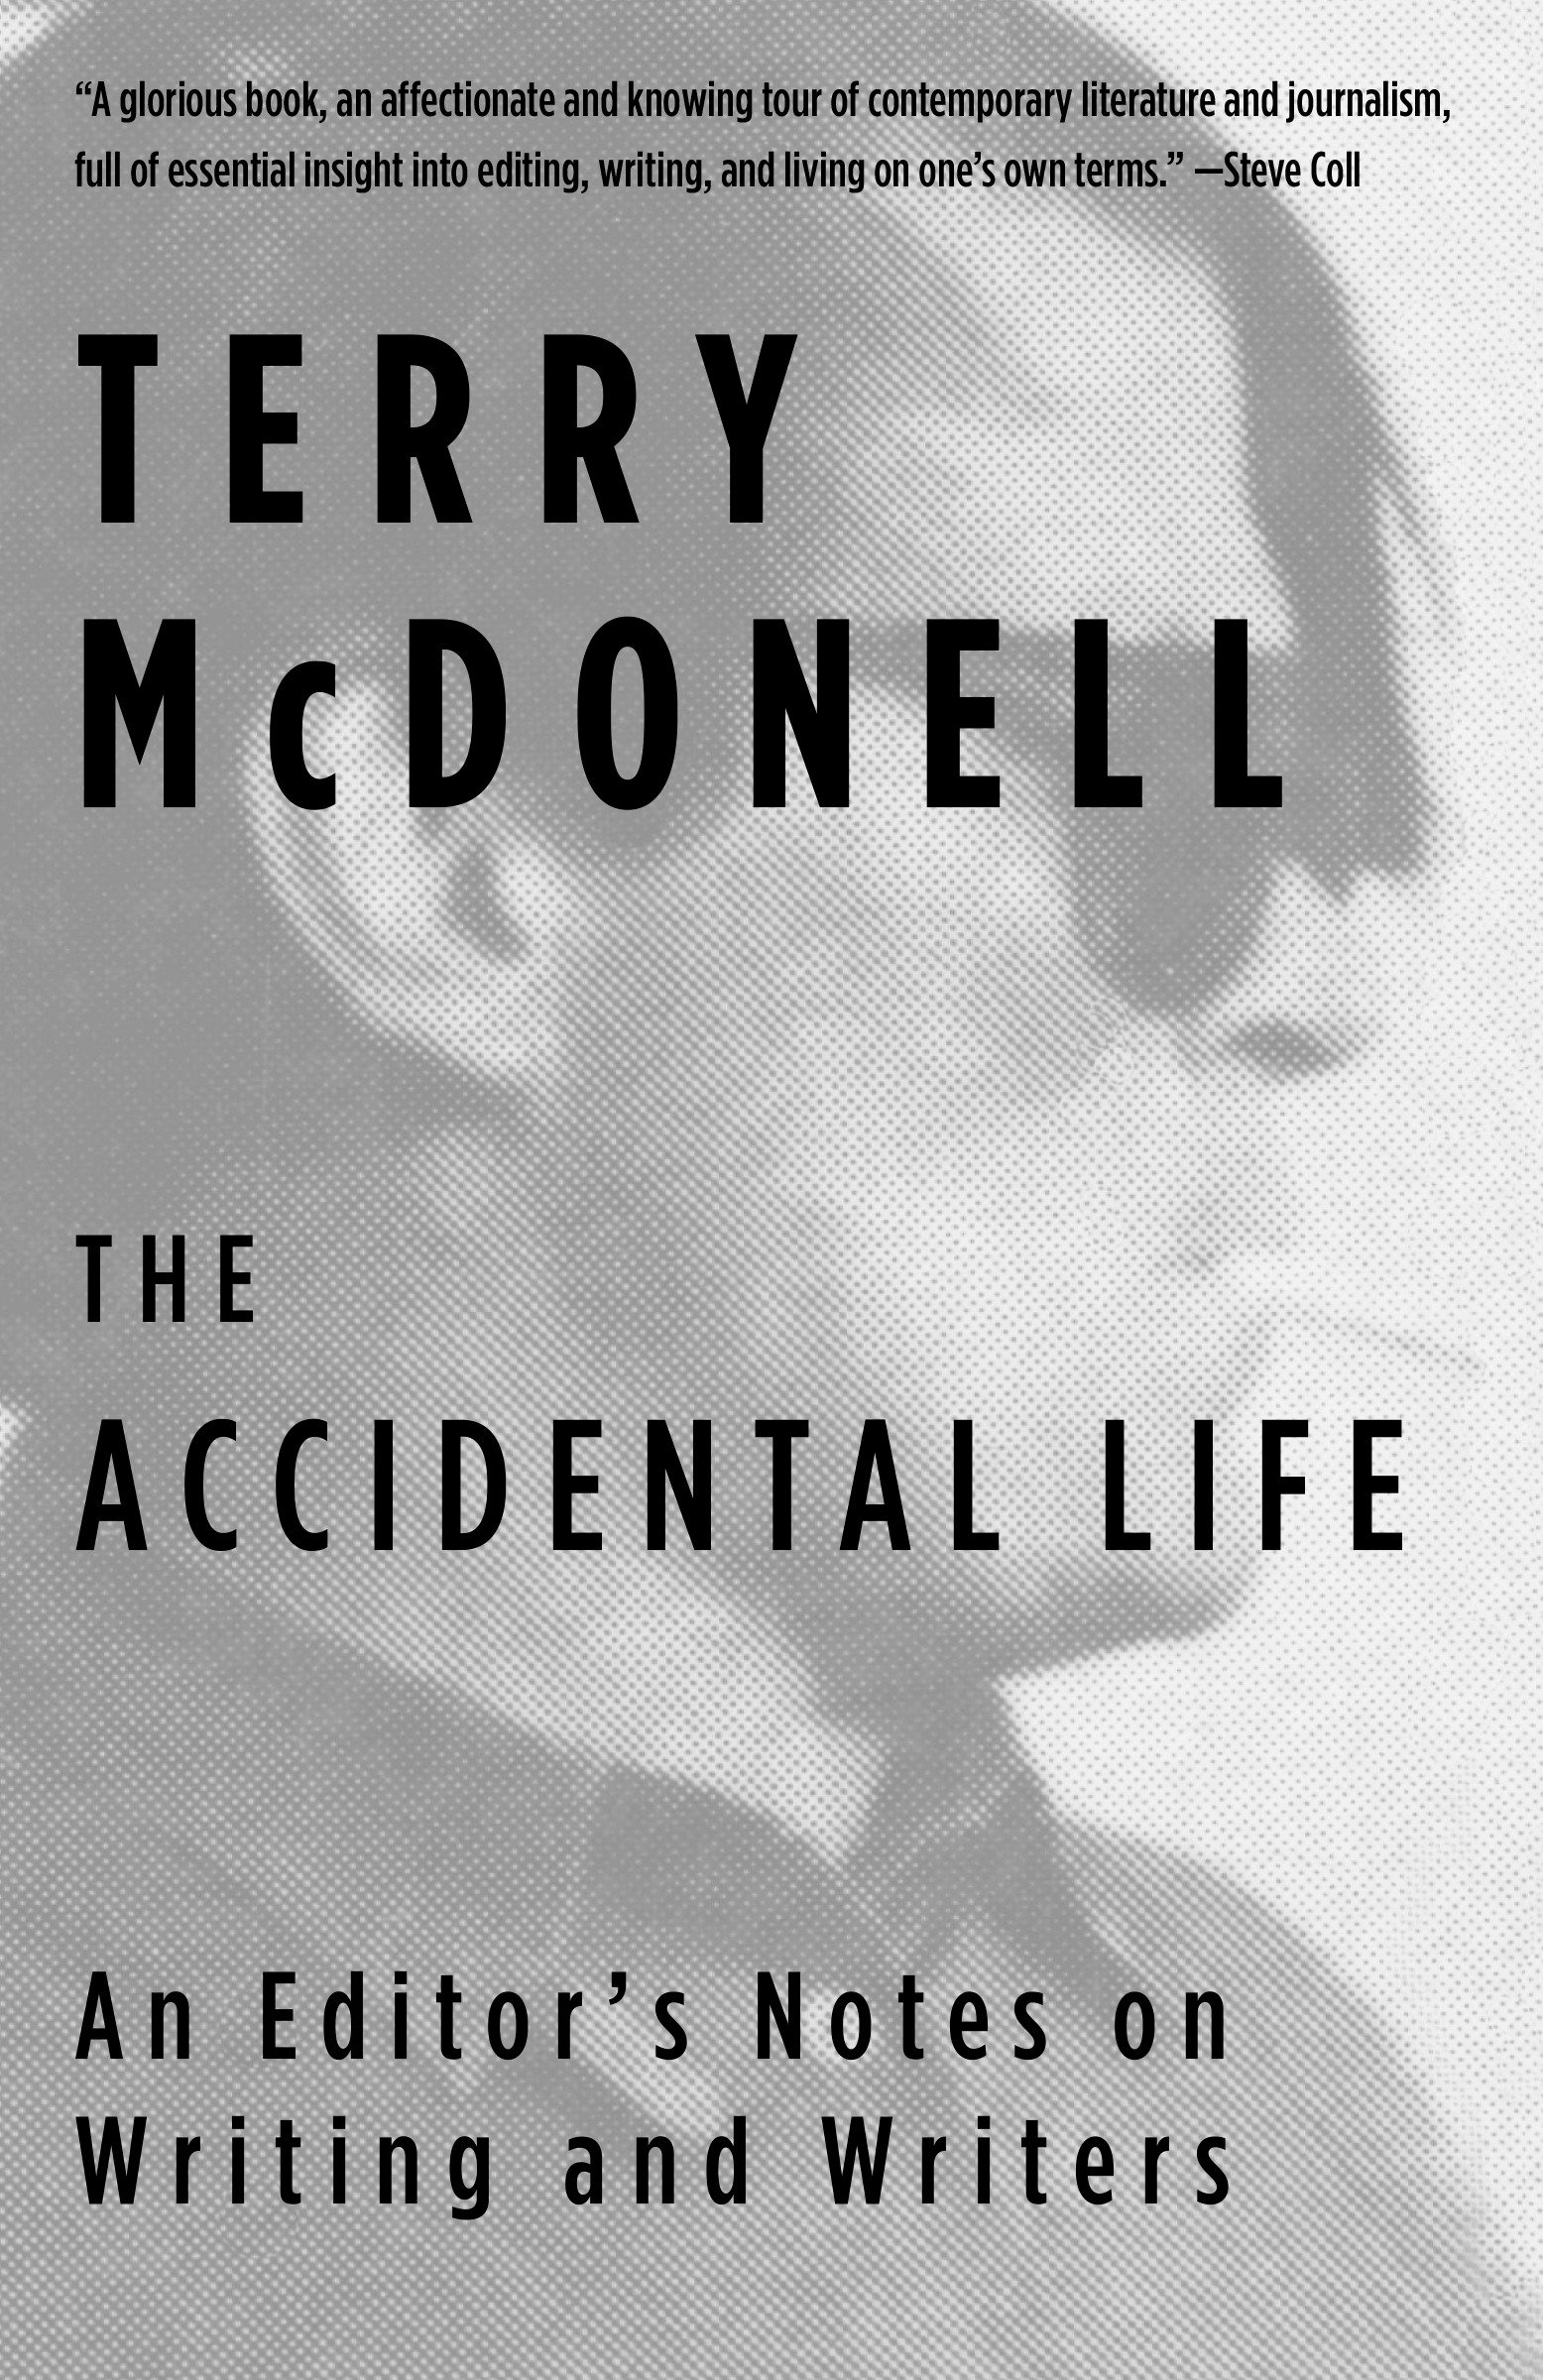 The Accidental Life An Editor's Notes on Writing and Writers